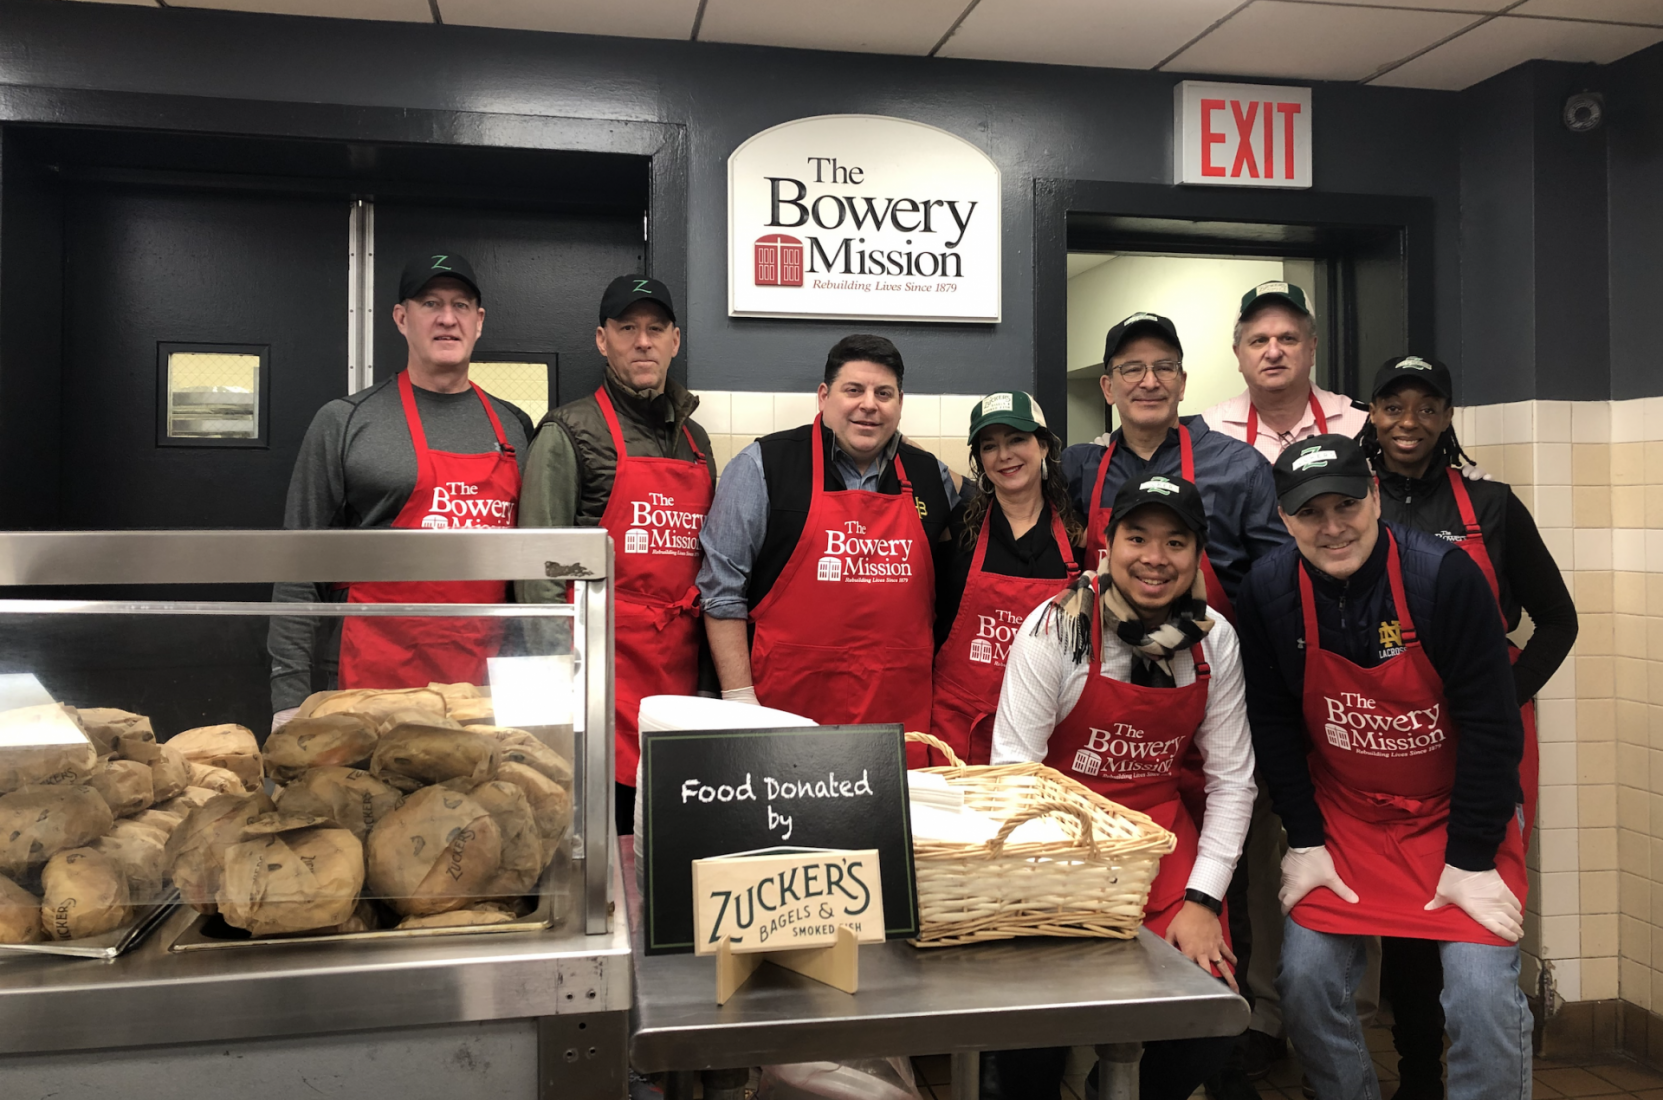 Zucker's Bagels Pledges 200,000 Bagels to The Bowery Mission